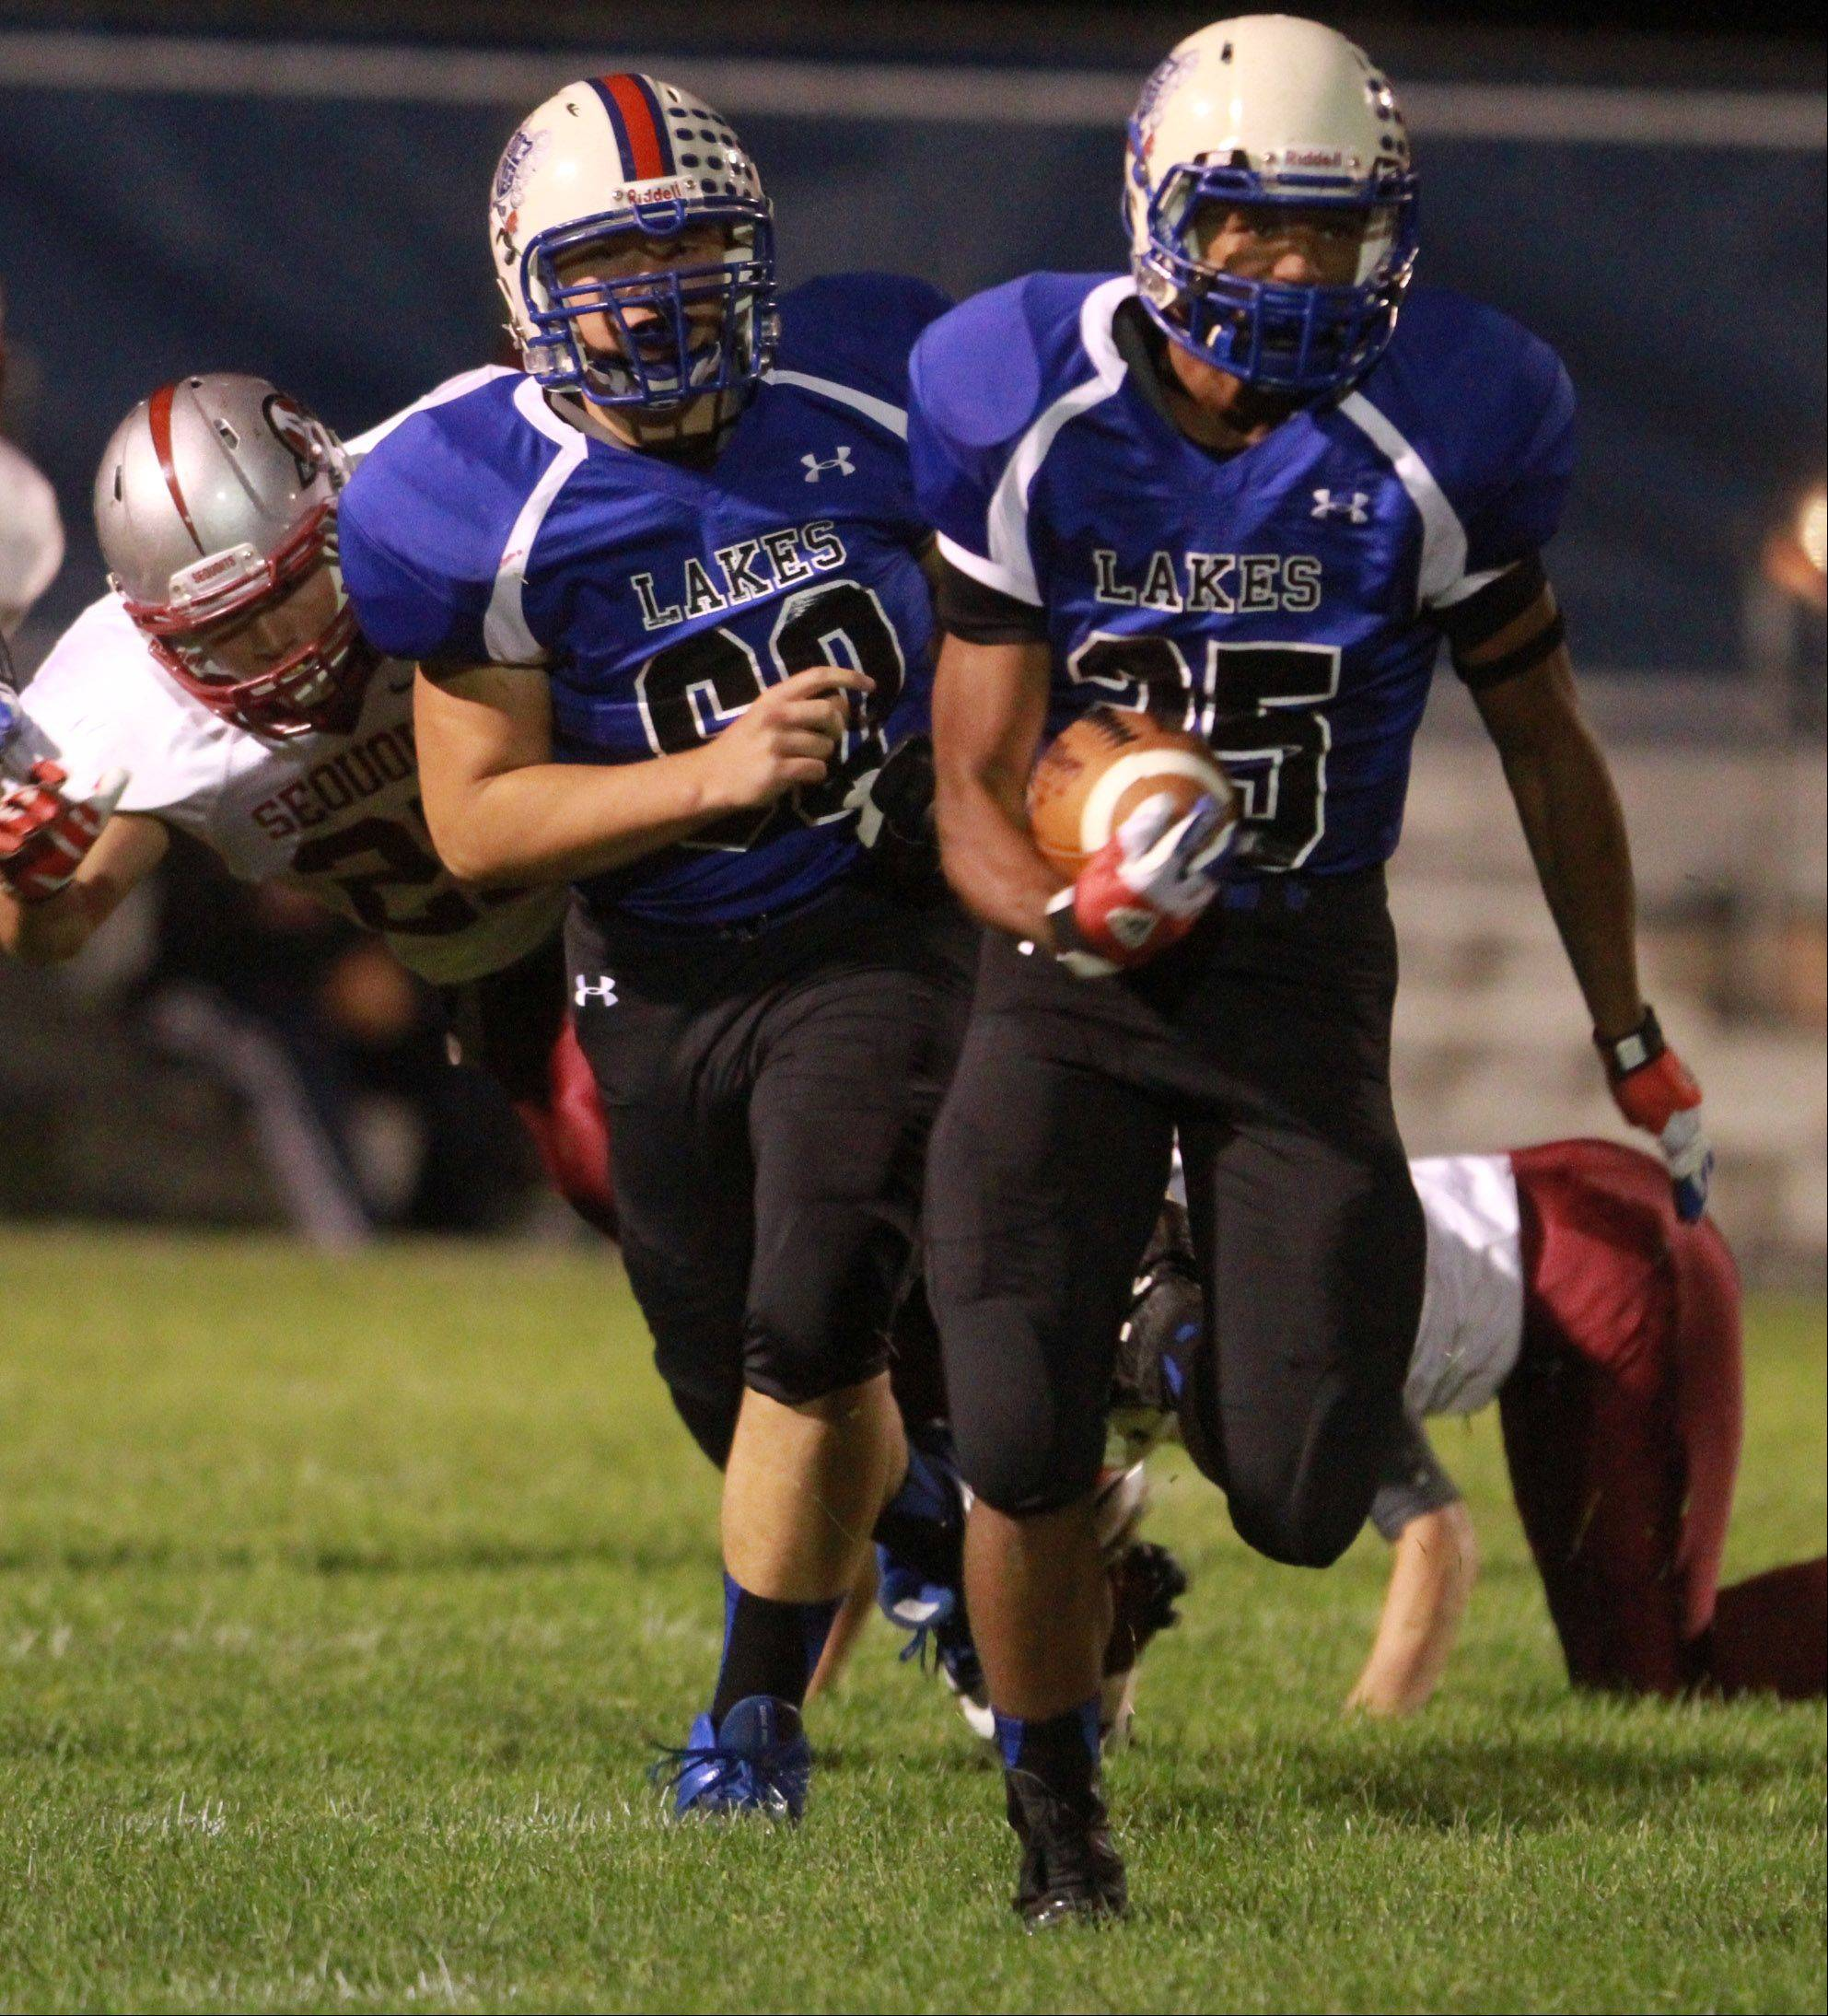 Lakes running-back Devyn Cedzidlo runs the ball.